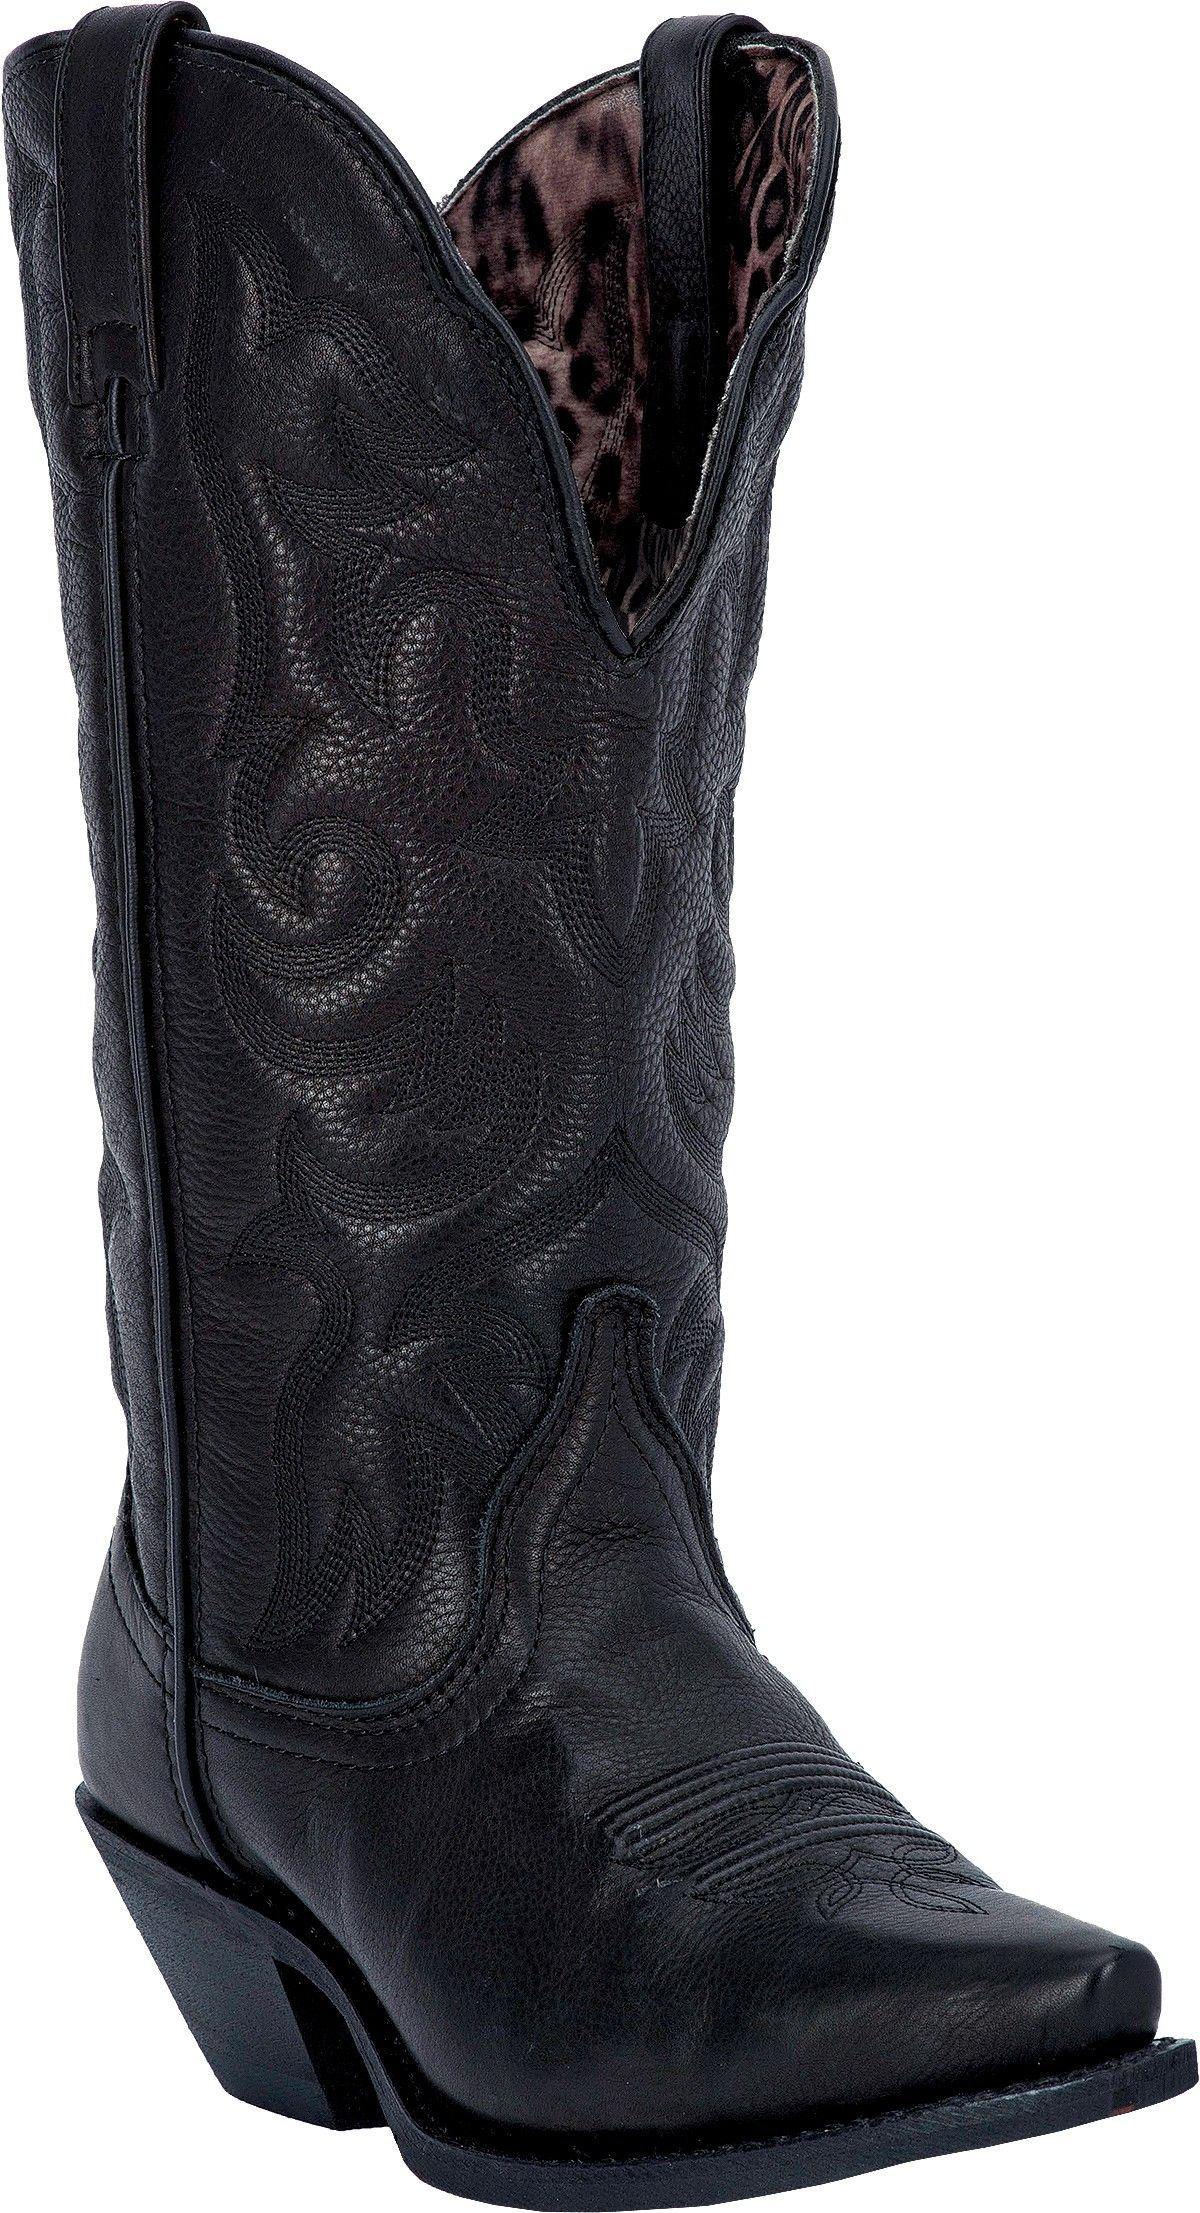 1000  images about Boots on Pinterest | Saddles Western boots and